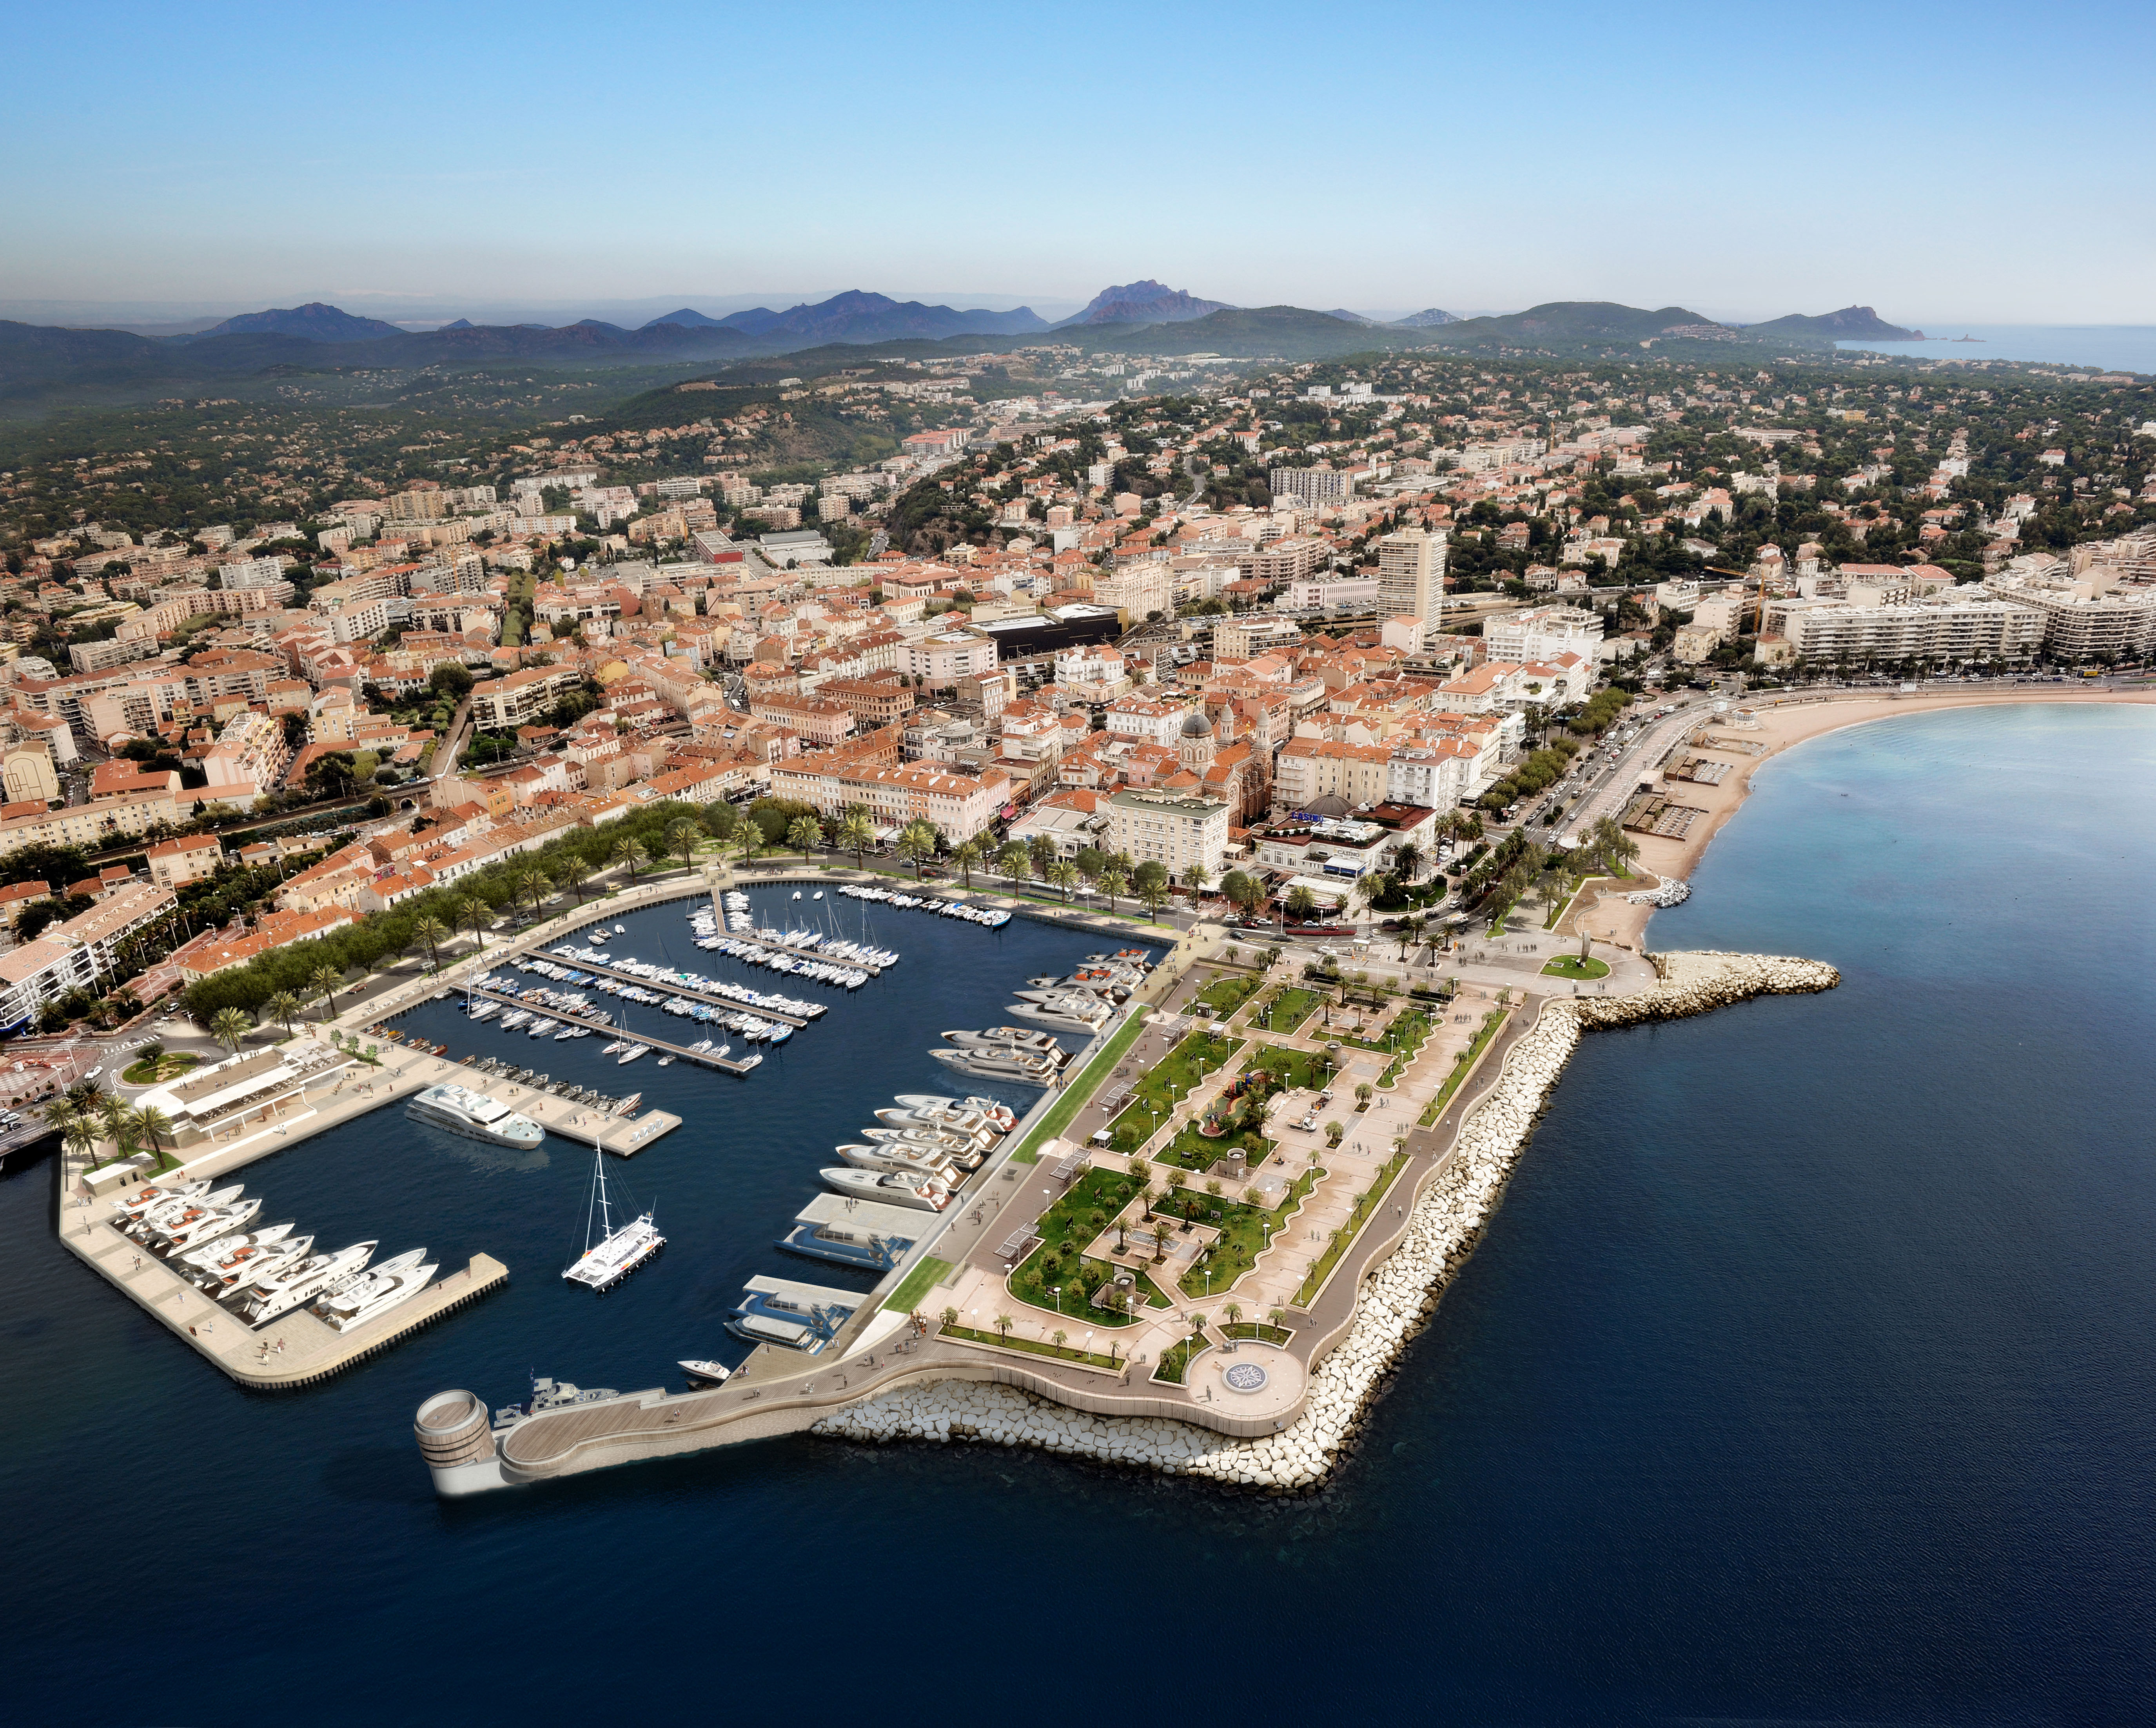 Renovation of Saint-Raphaël Old Port on the French Riviera